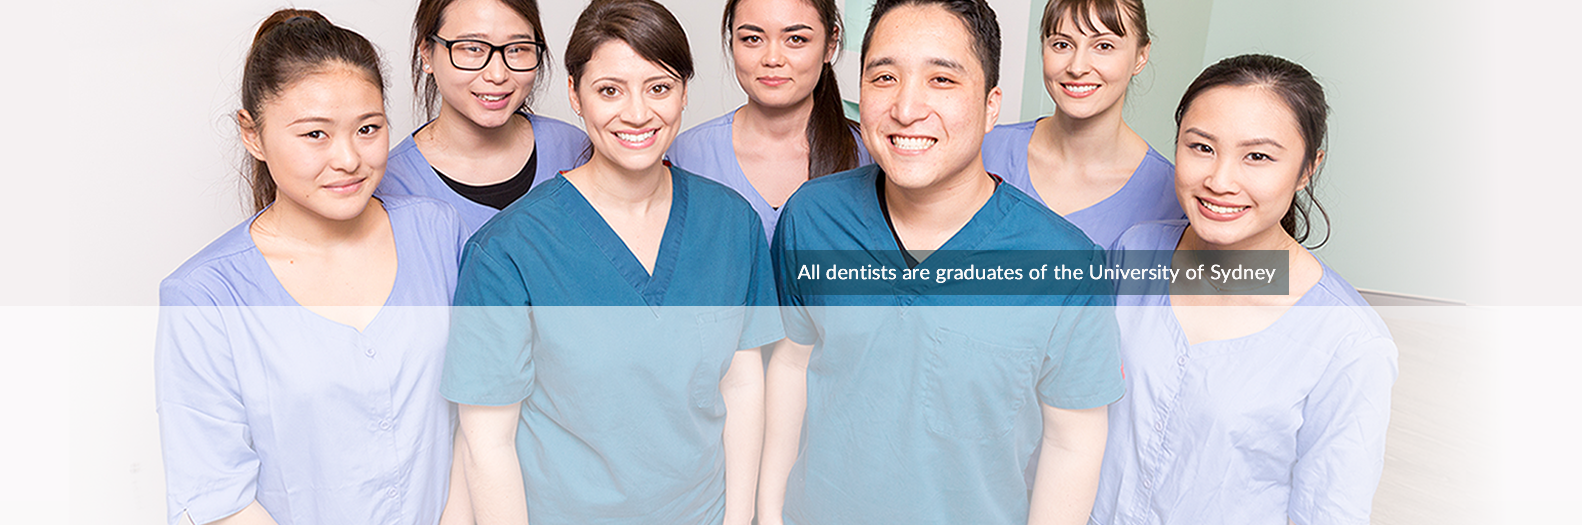 All Dentists are graduates of the University of Sydney